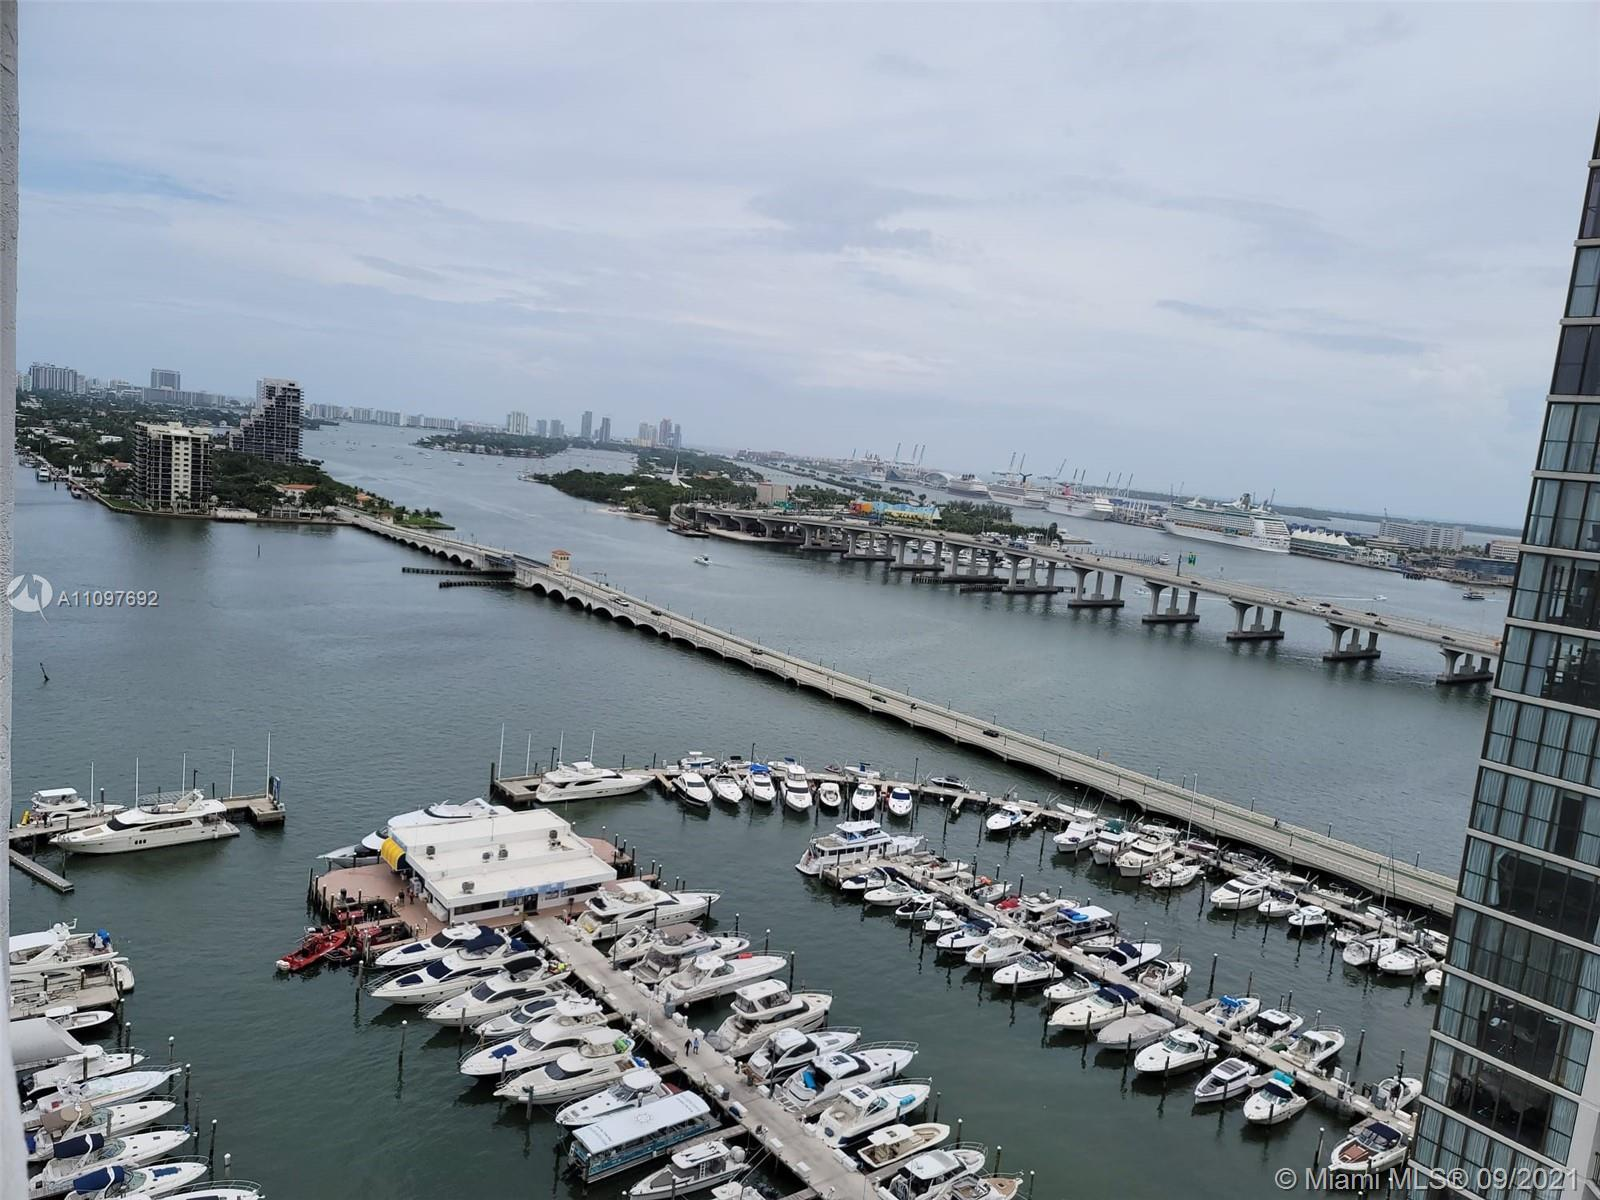 Beautifully remodeled unit at The Grand with stunning views of Biscayne Bay and Miami. Unit complete